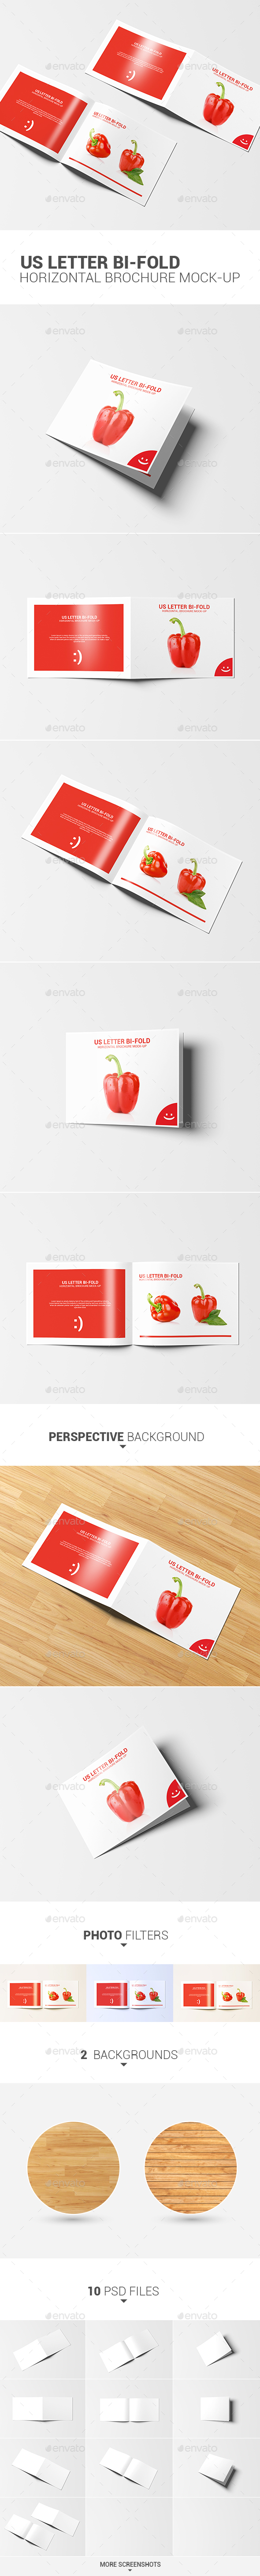 US Letter Bi-fold Horizontal Brochure Mock-Up - Product Mock-Ups Graphics